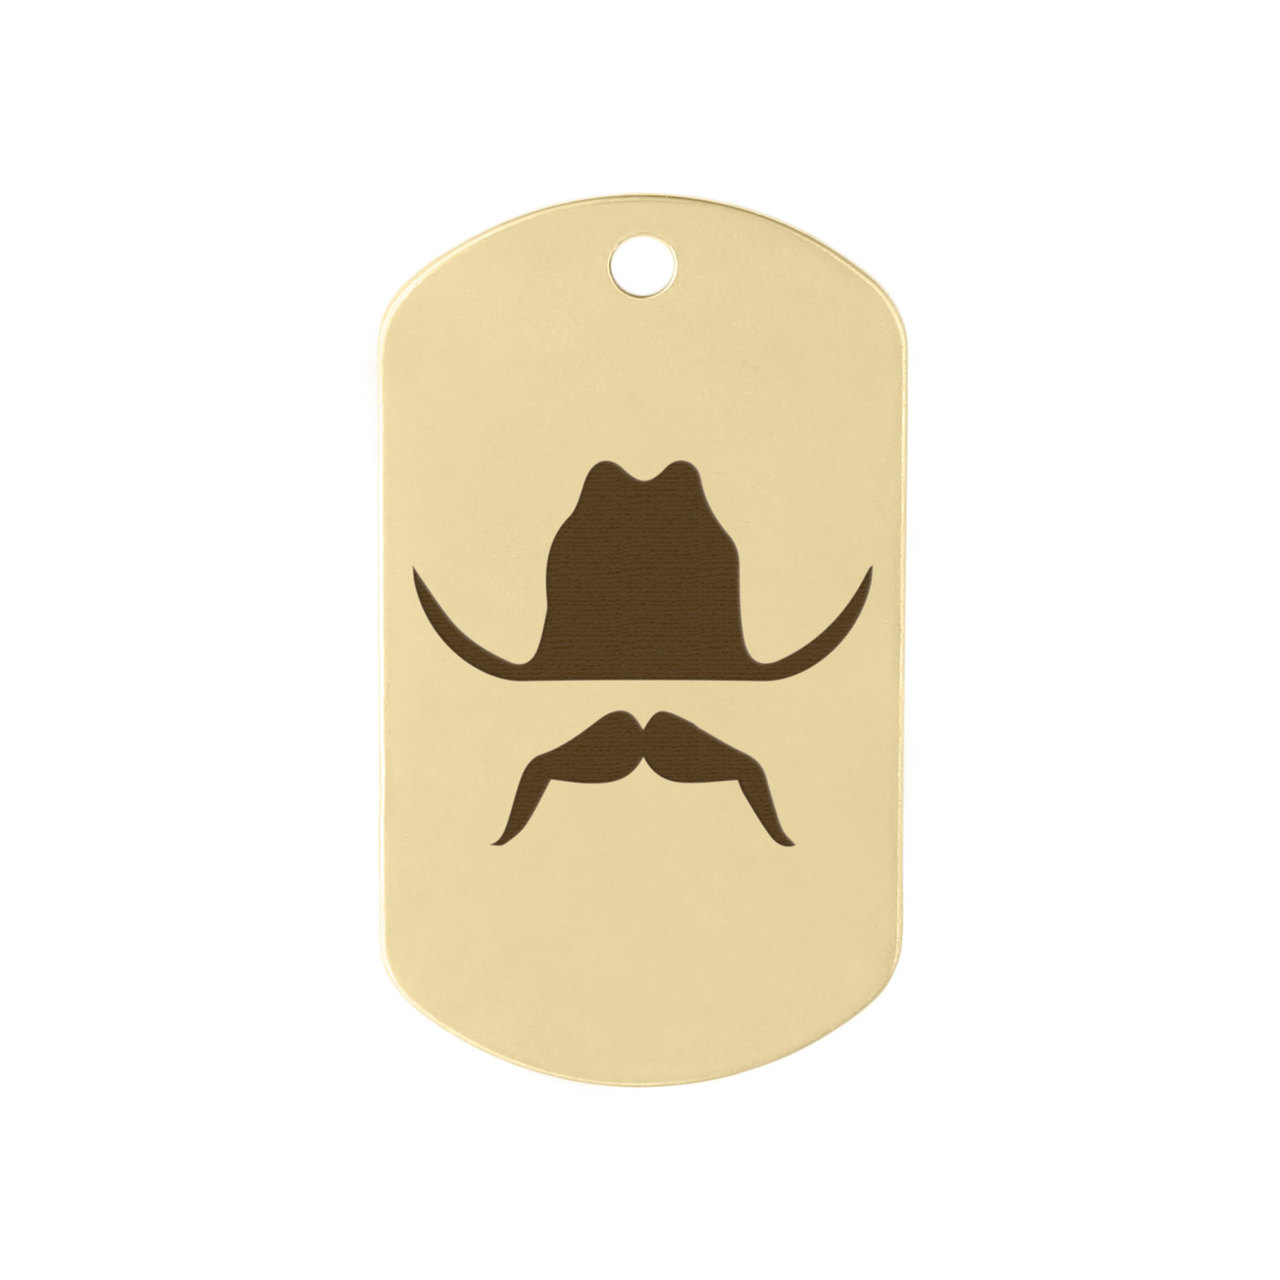 Mustache Design Dog Tags - Cowboy Mustache on Brass